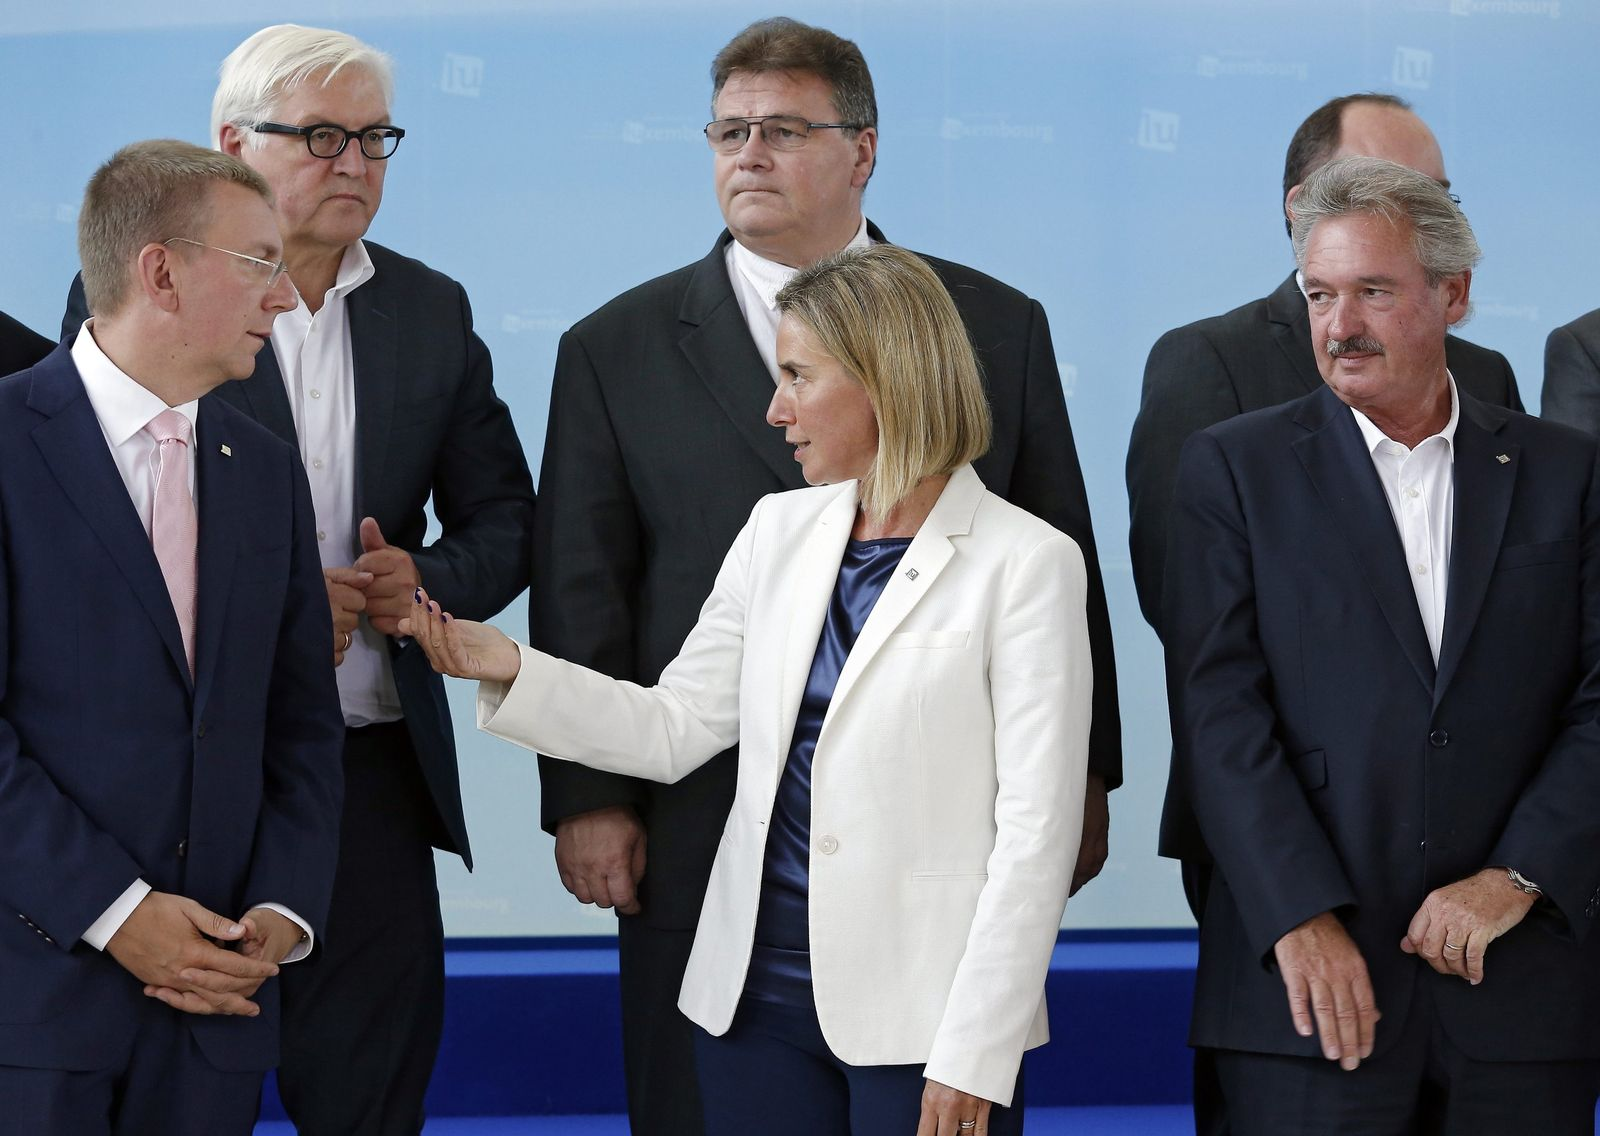 EU Foreign Affairs Council meeting in Luxembourg